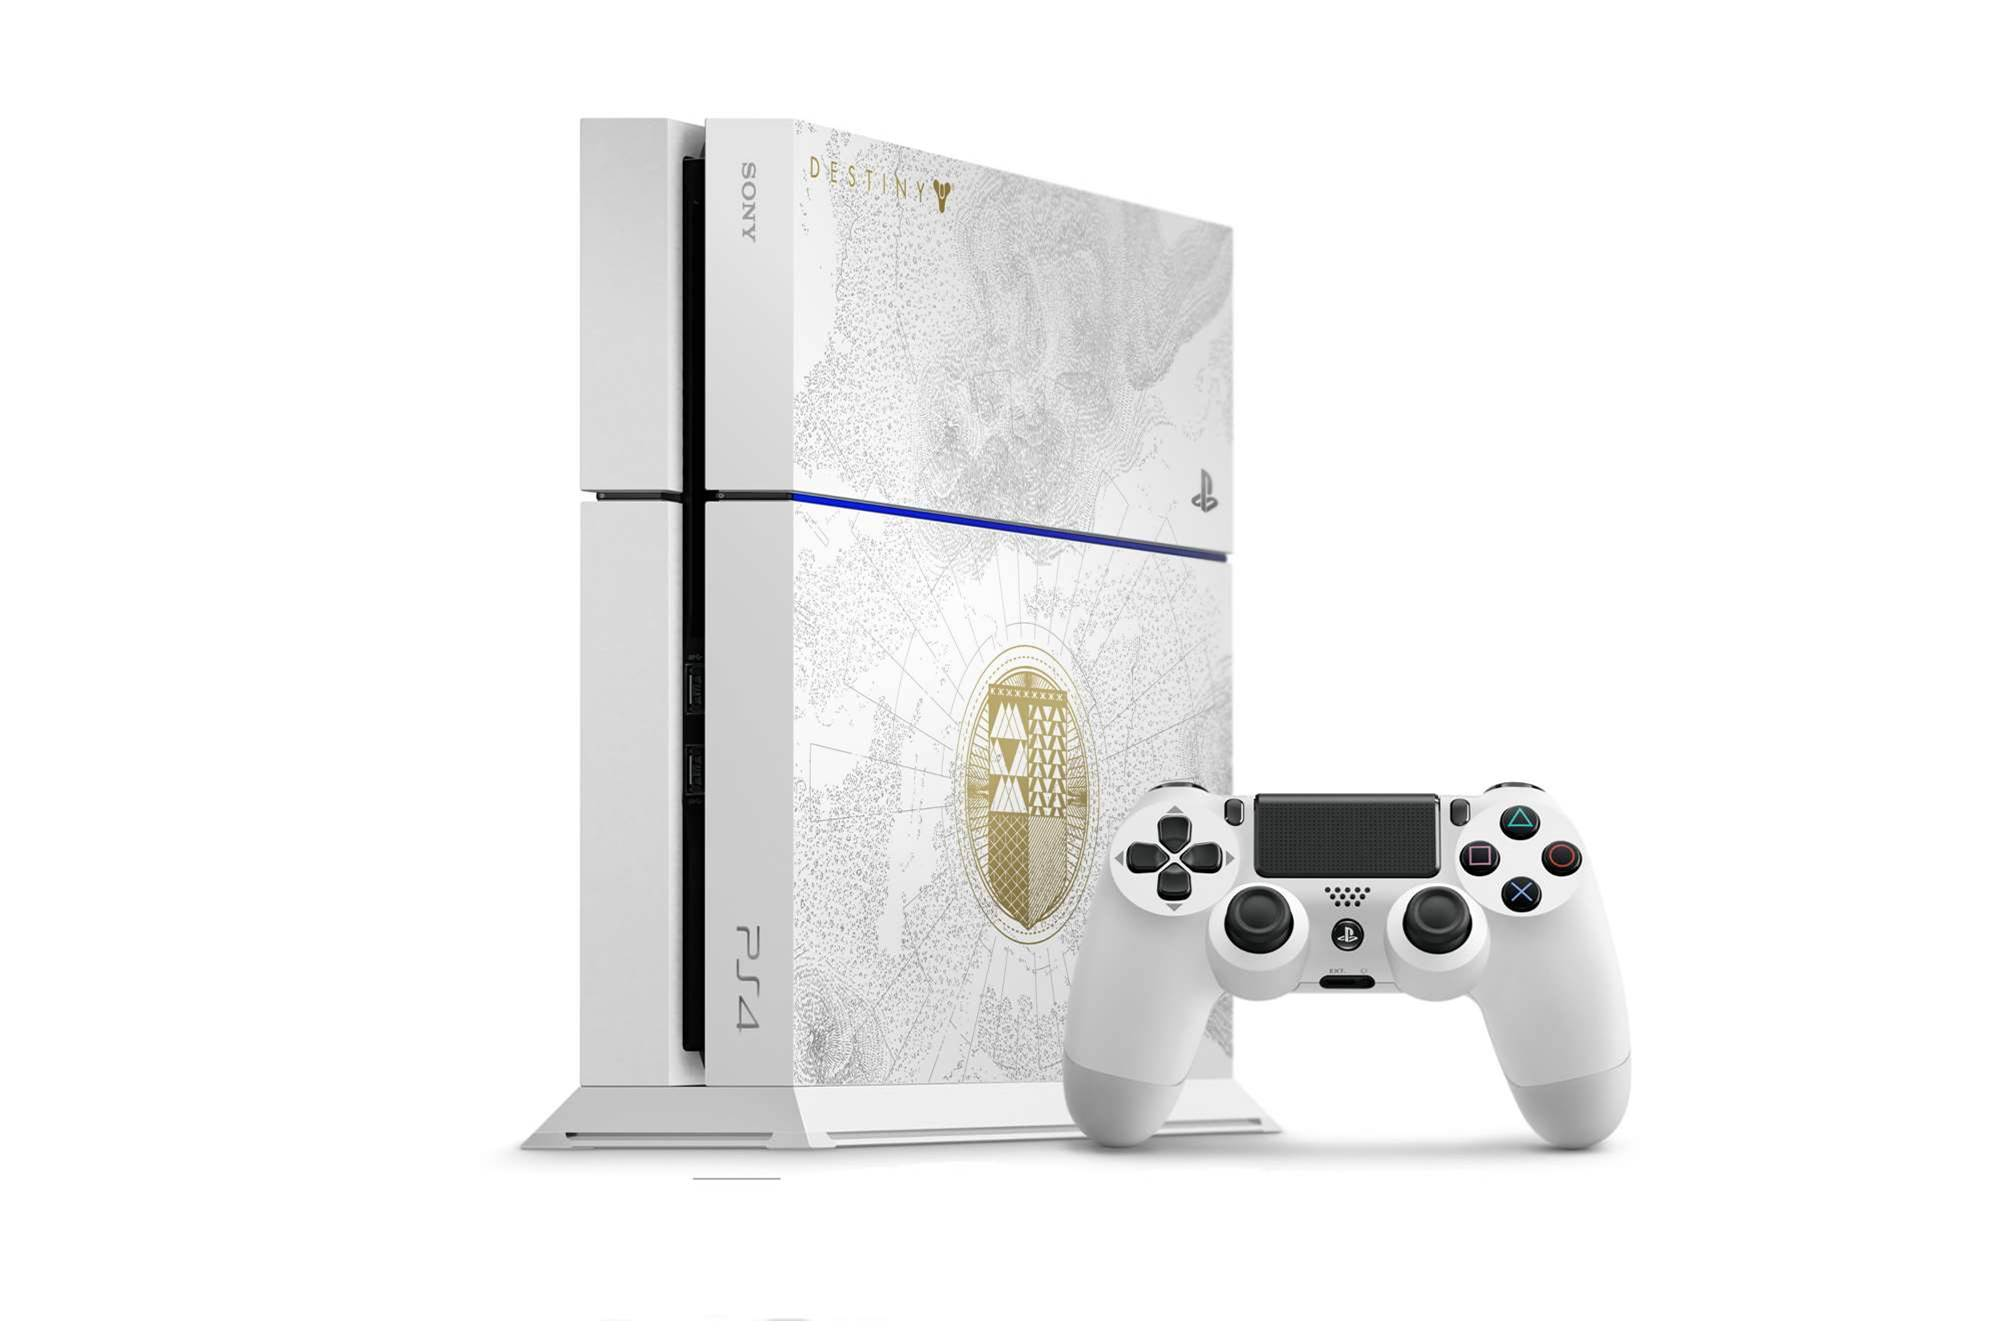 Destiny PS4 bundle details